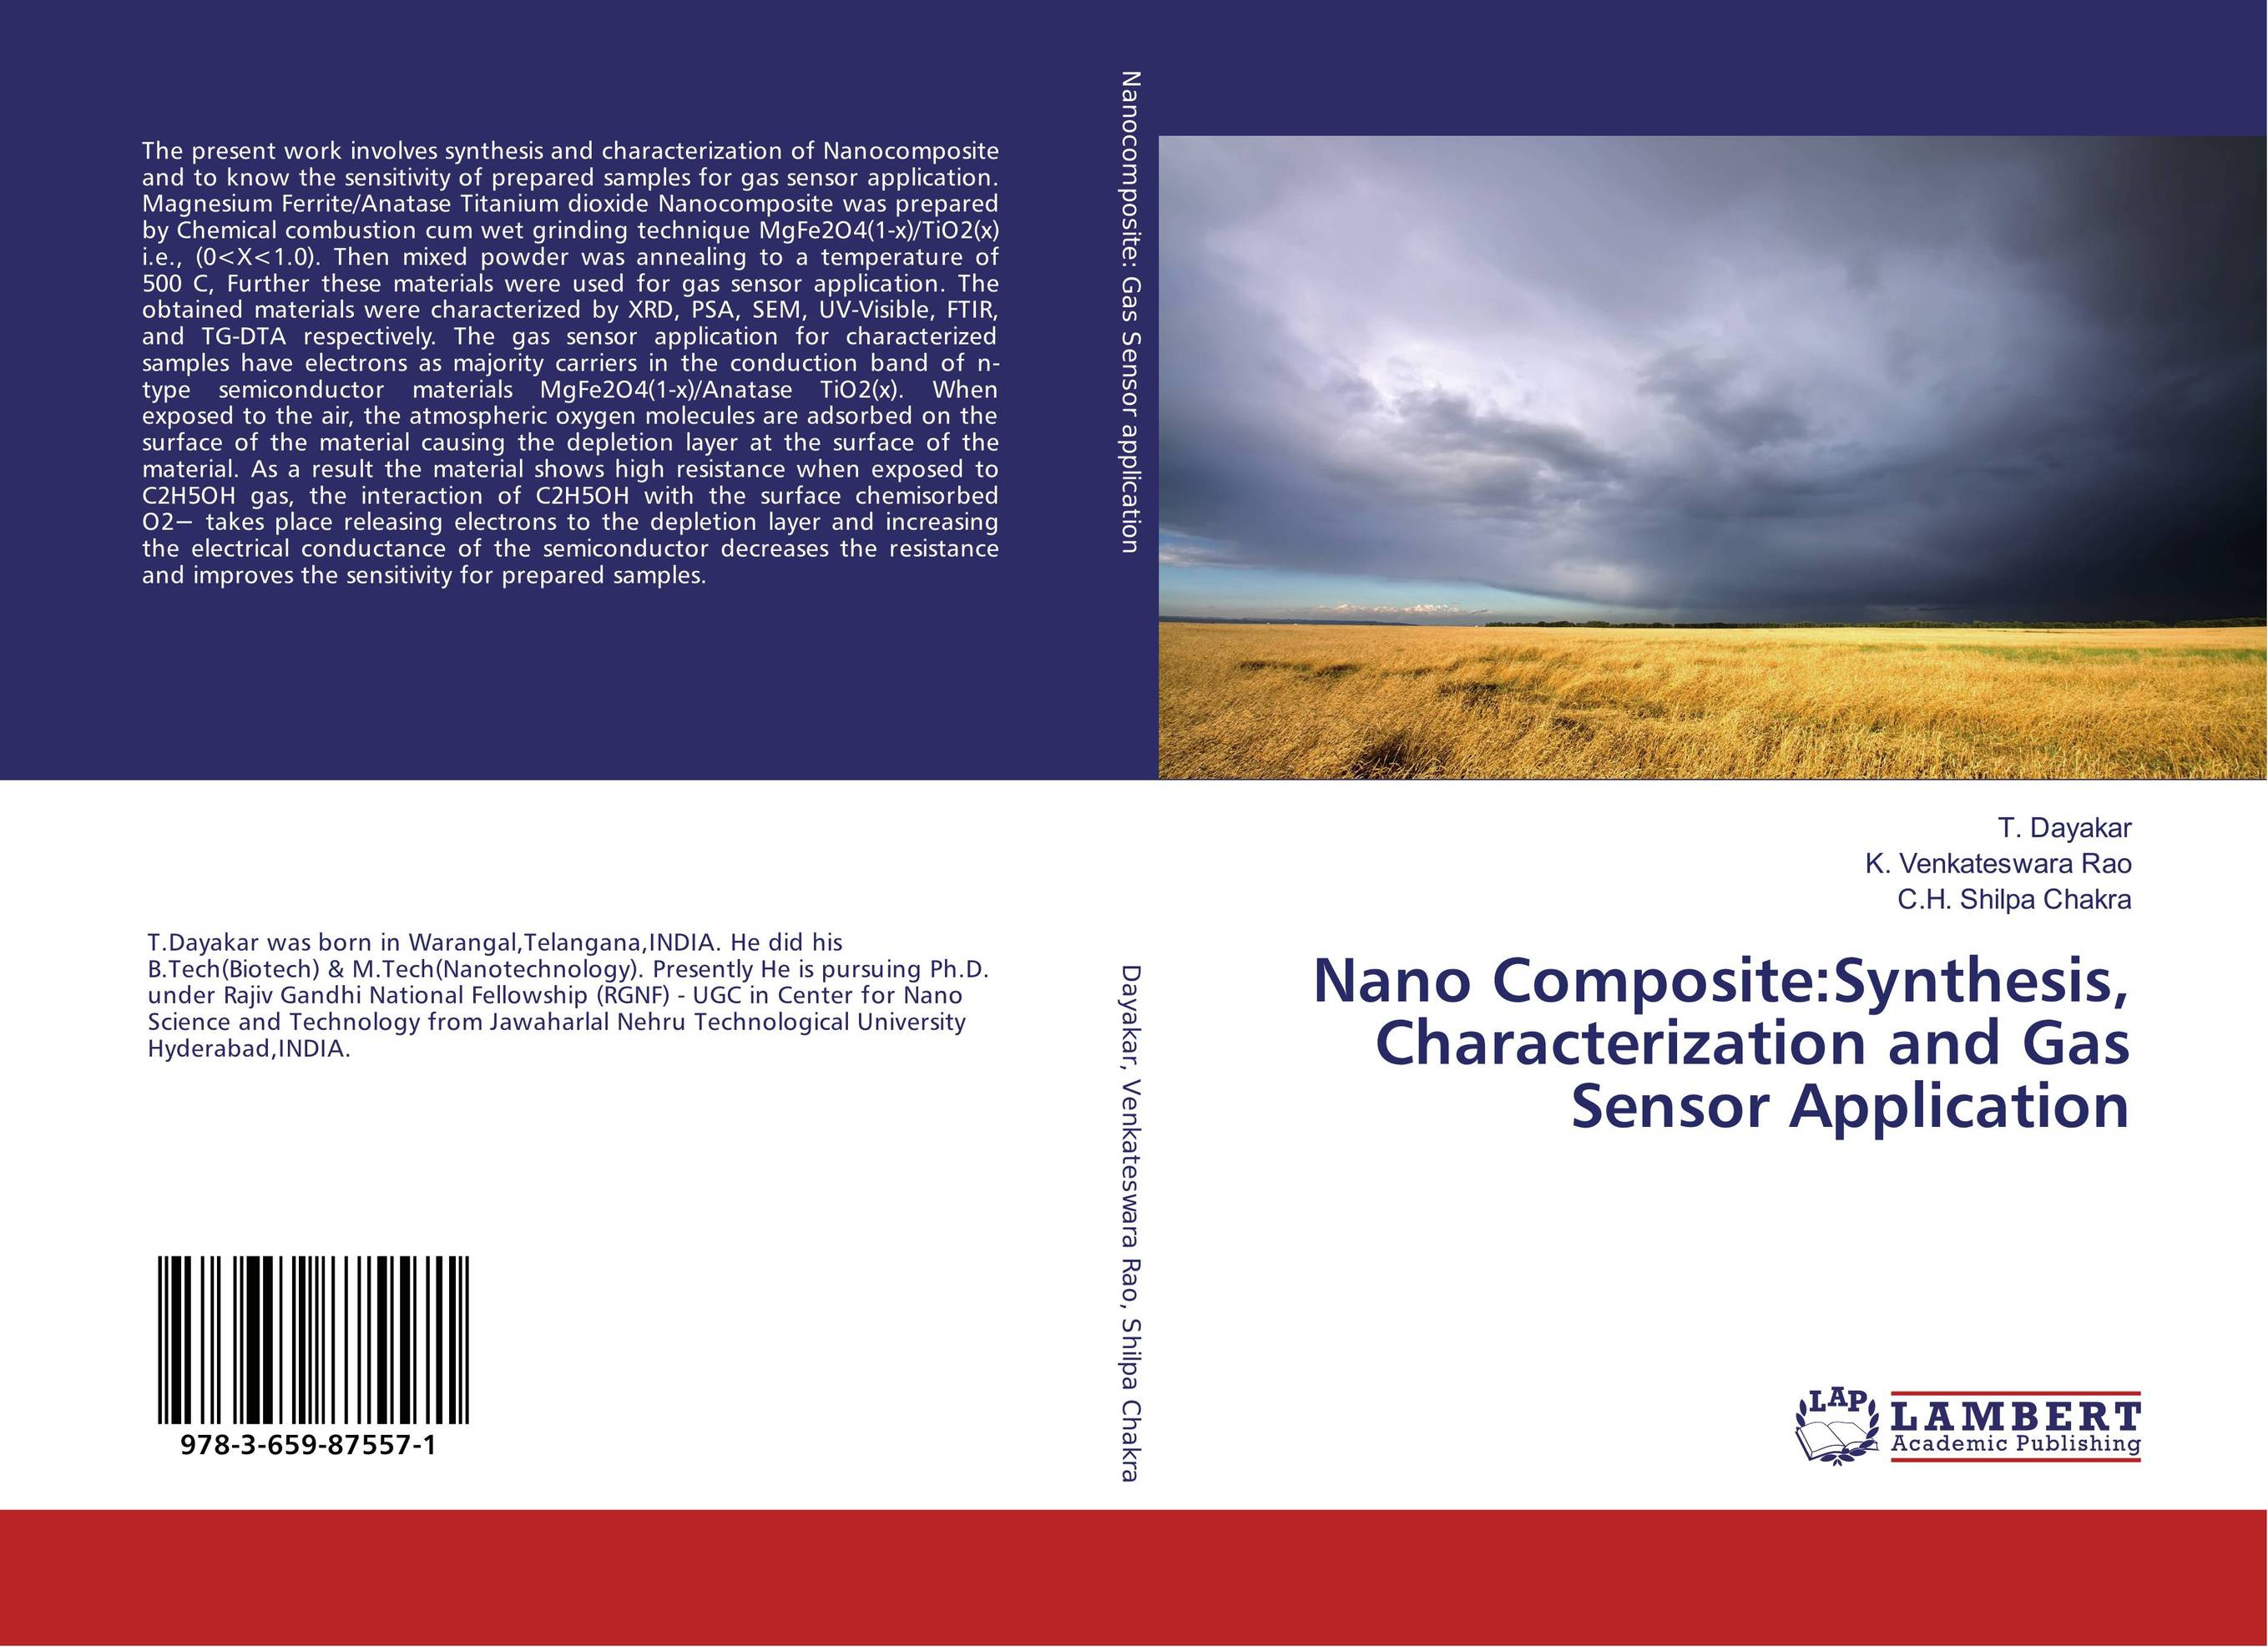 Nano Composite:Synthesis, Characterization and Gas Sensor Application synthesis characterization and applications of nano cdha